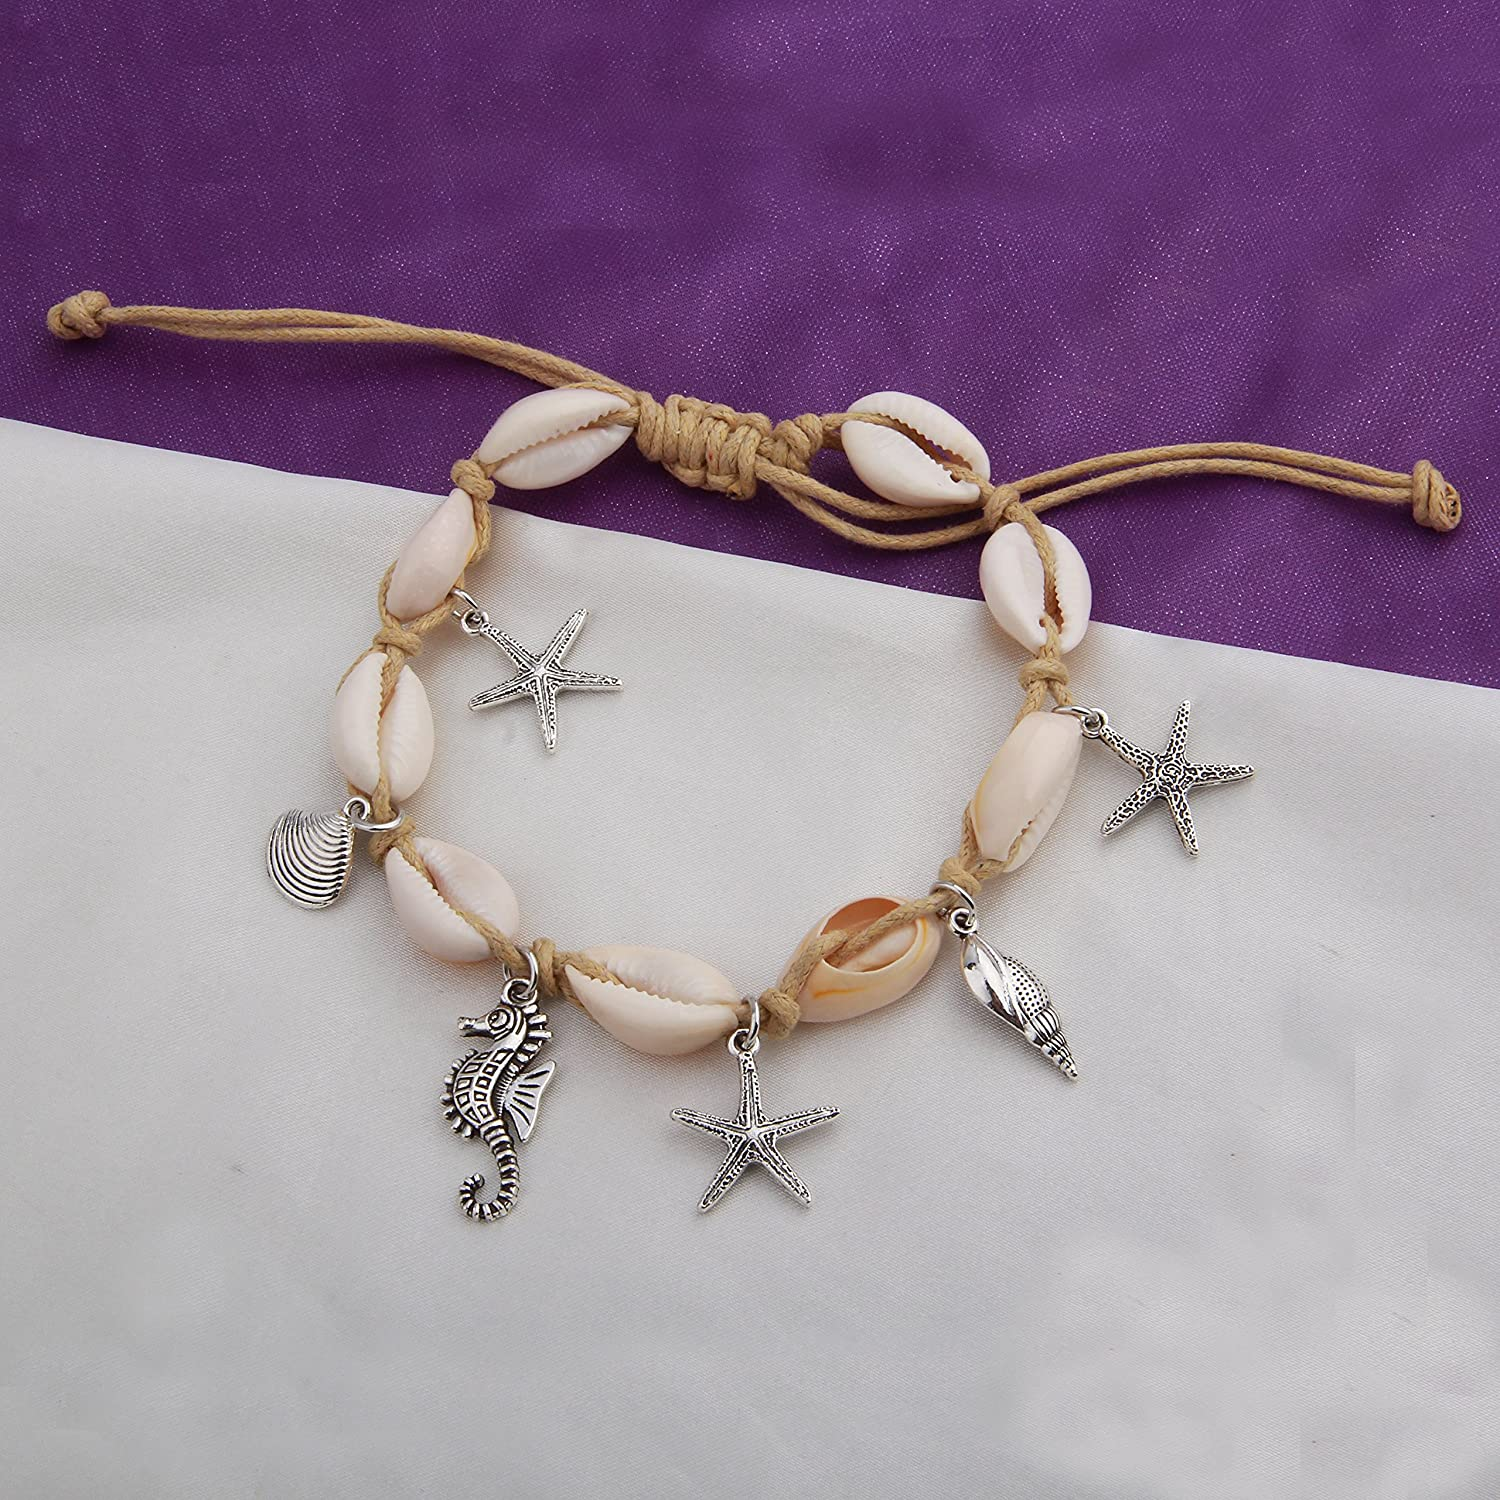 RQIER Cowrie Shell Bracelet with Starfish Seahorse Charm Shell Anklet Foot Jewelry Beach Jewelry for Women